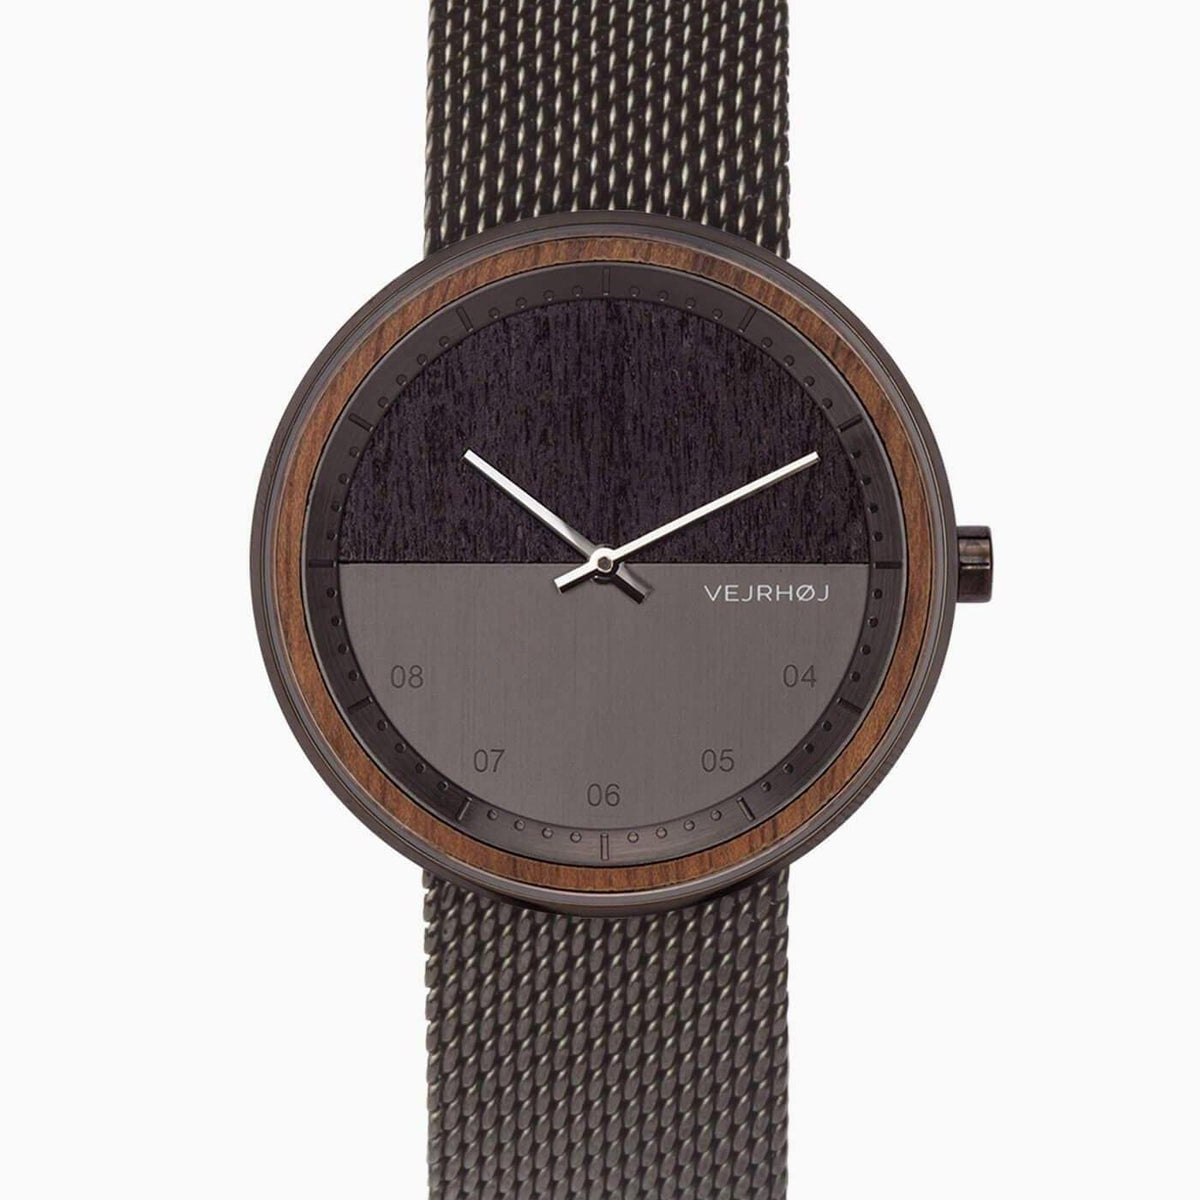 The Gun - Gunmetal & Walnut Wood Watch-Watch-VEJRHØJ-Totem Store